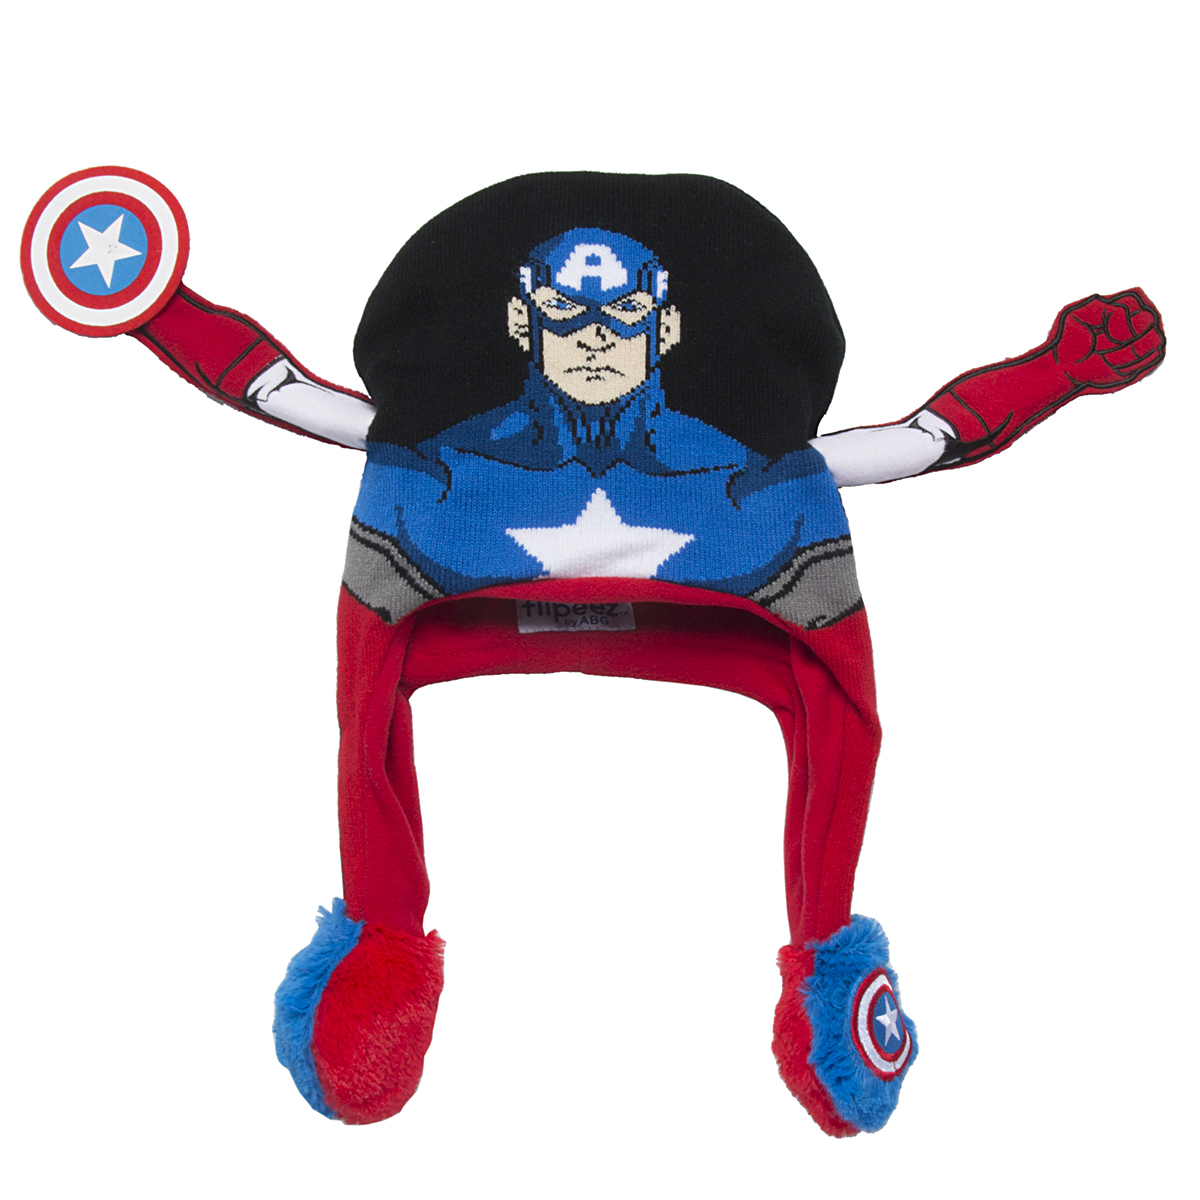 Flipeez - Flipeez Fun Kids Action Hat Spiderman Olaf Elsa Captain America  Avengers Frozen - Walmart.com c70d13d87bb0